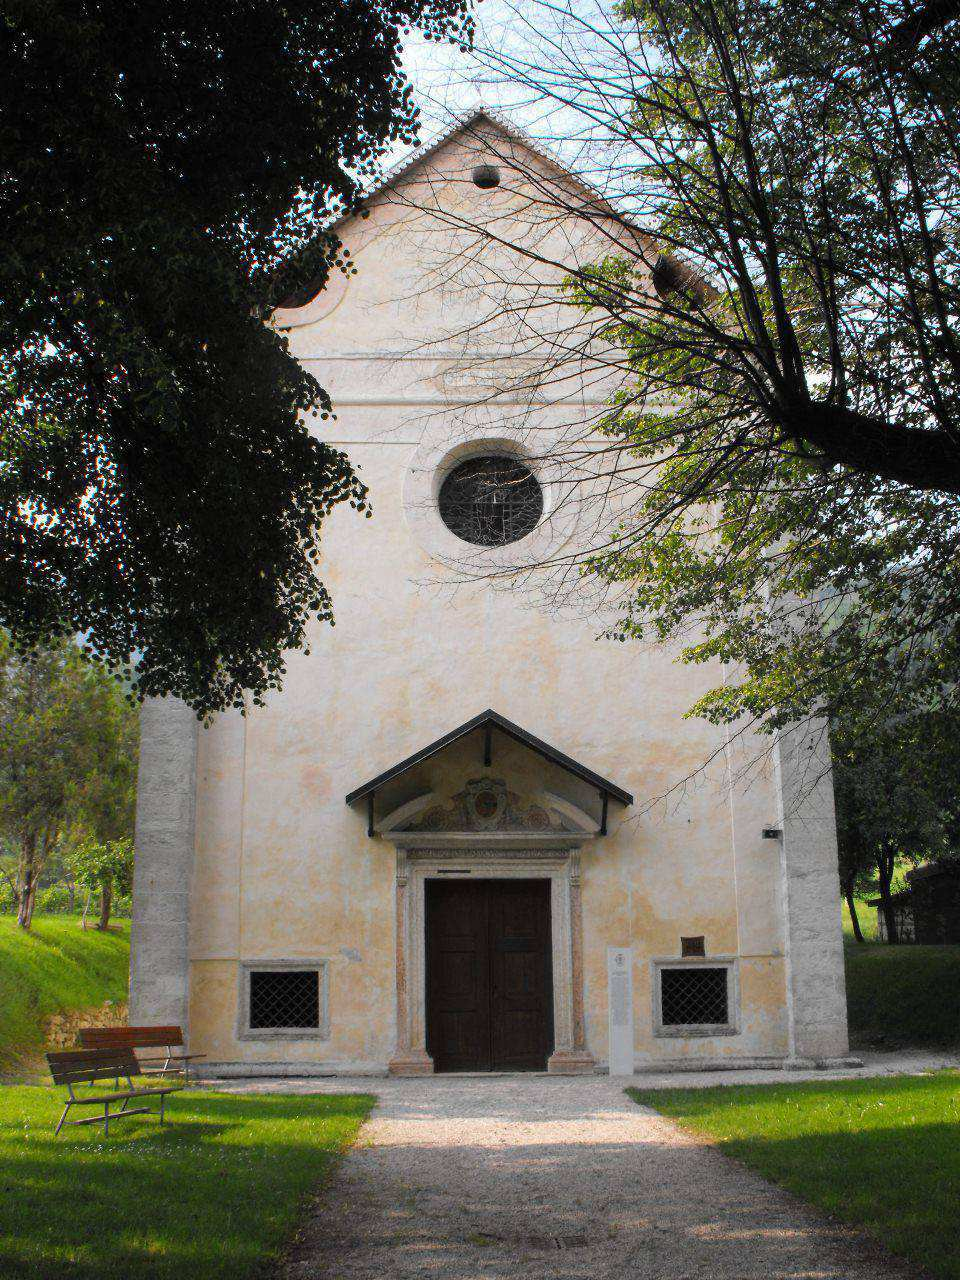 Sanctuary of the Onea Madonna